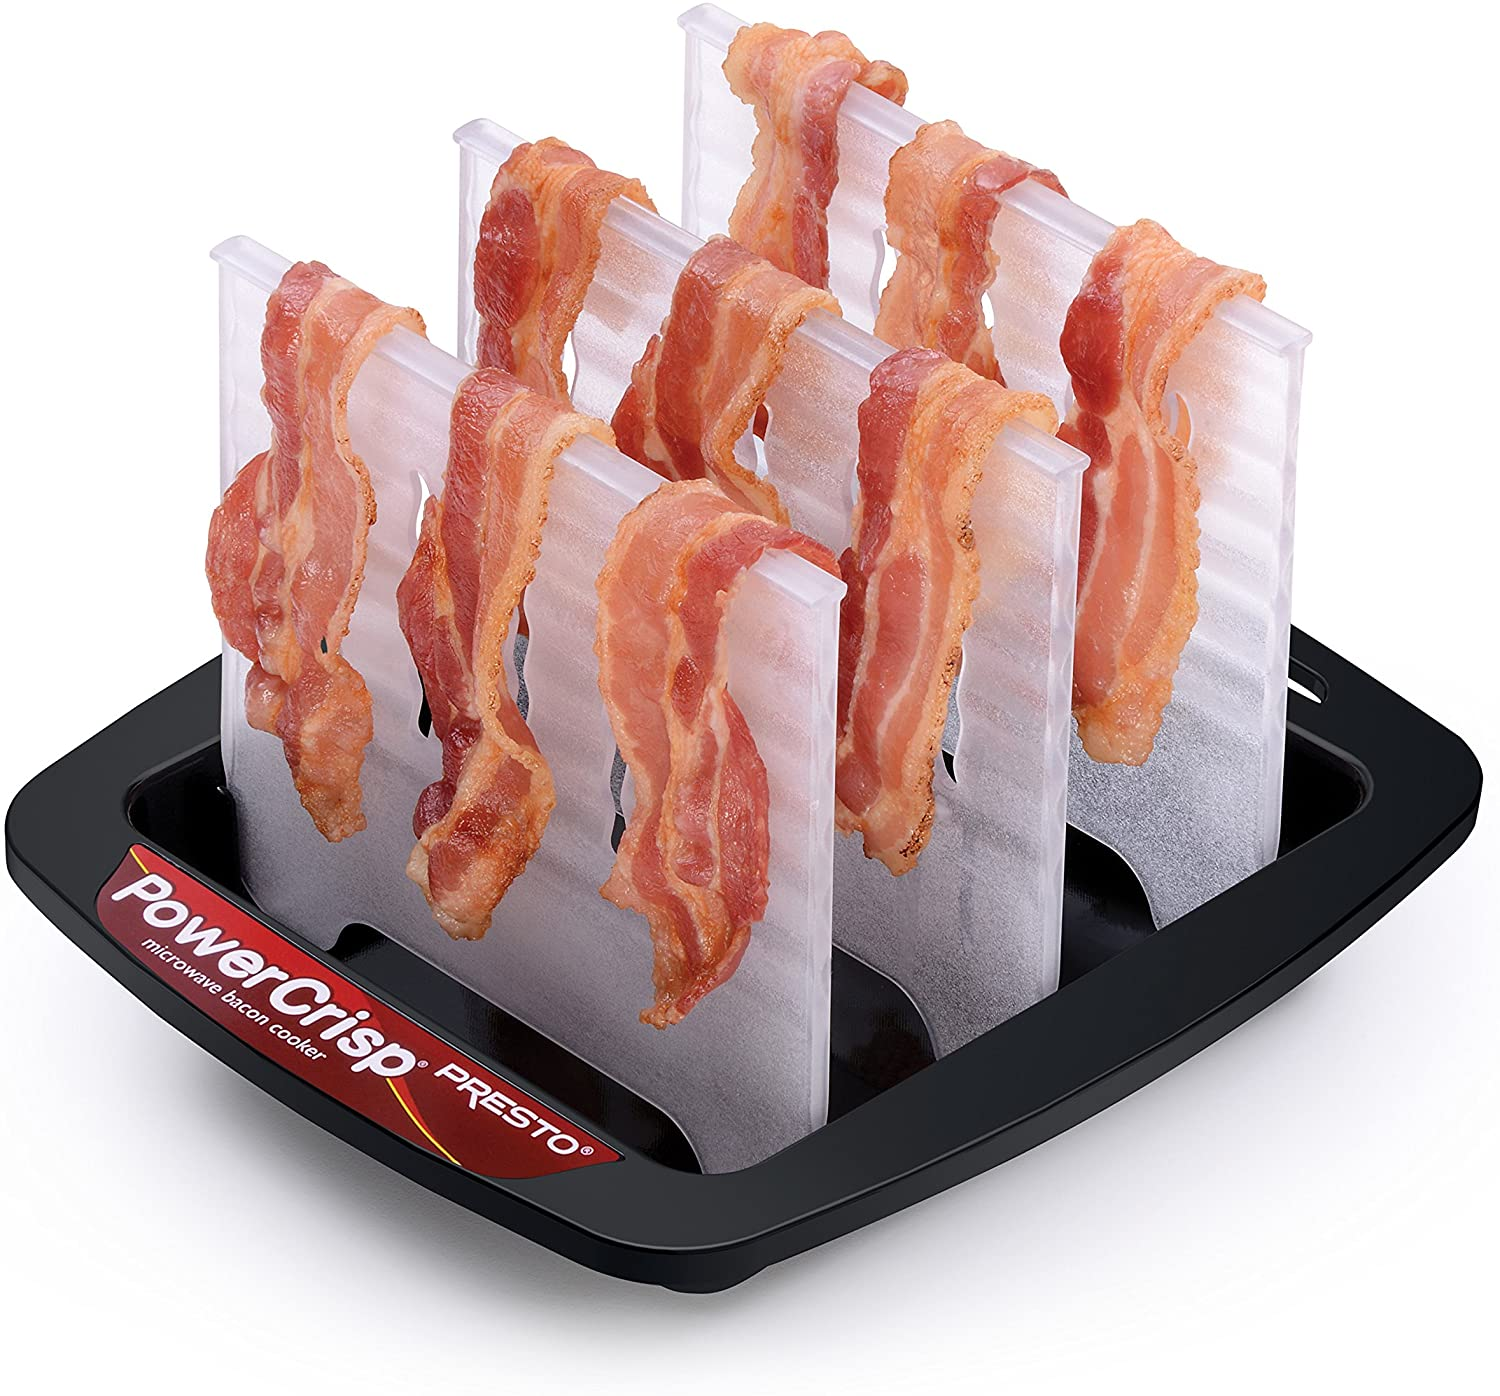 Make lots of bacon in minutes with this handy tool